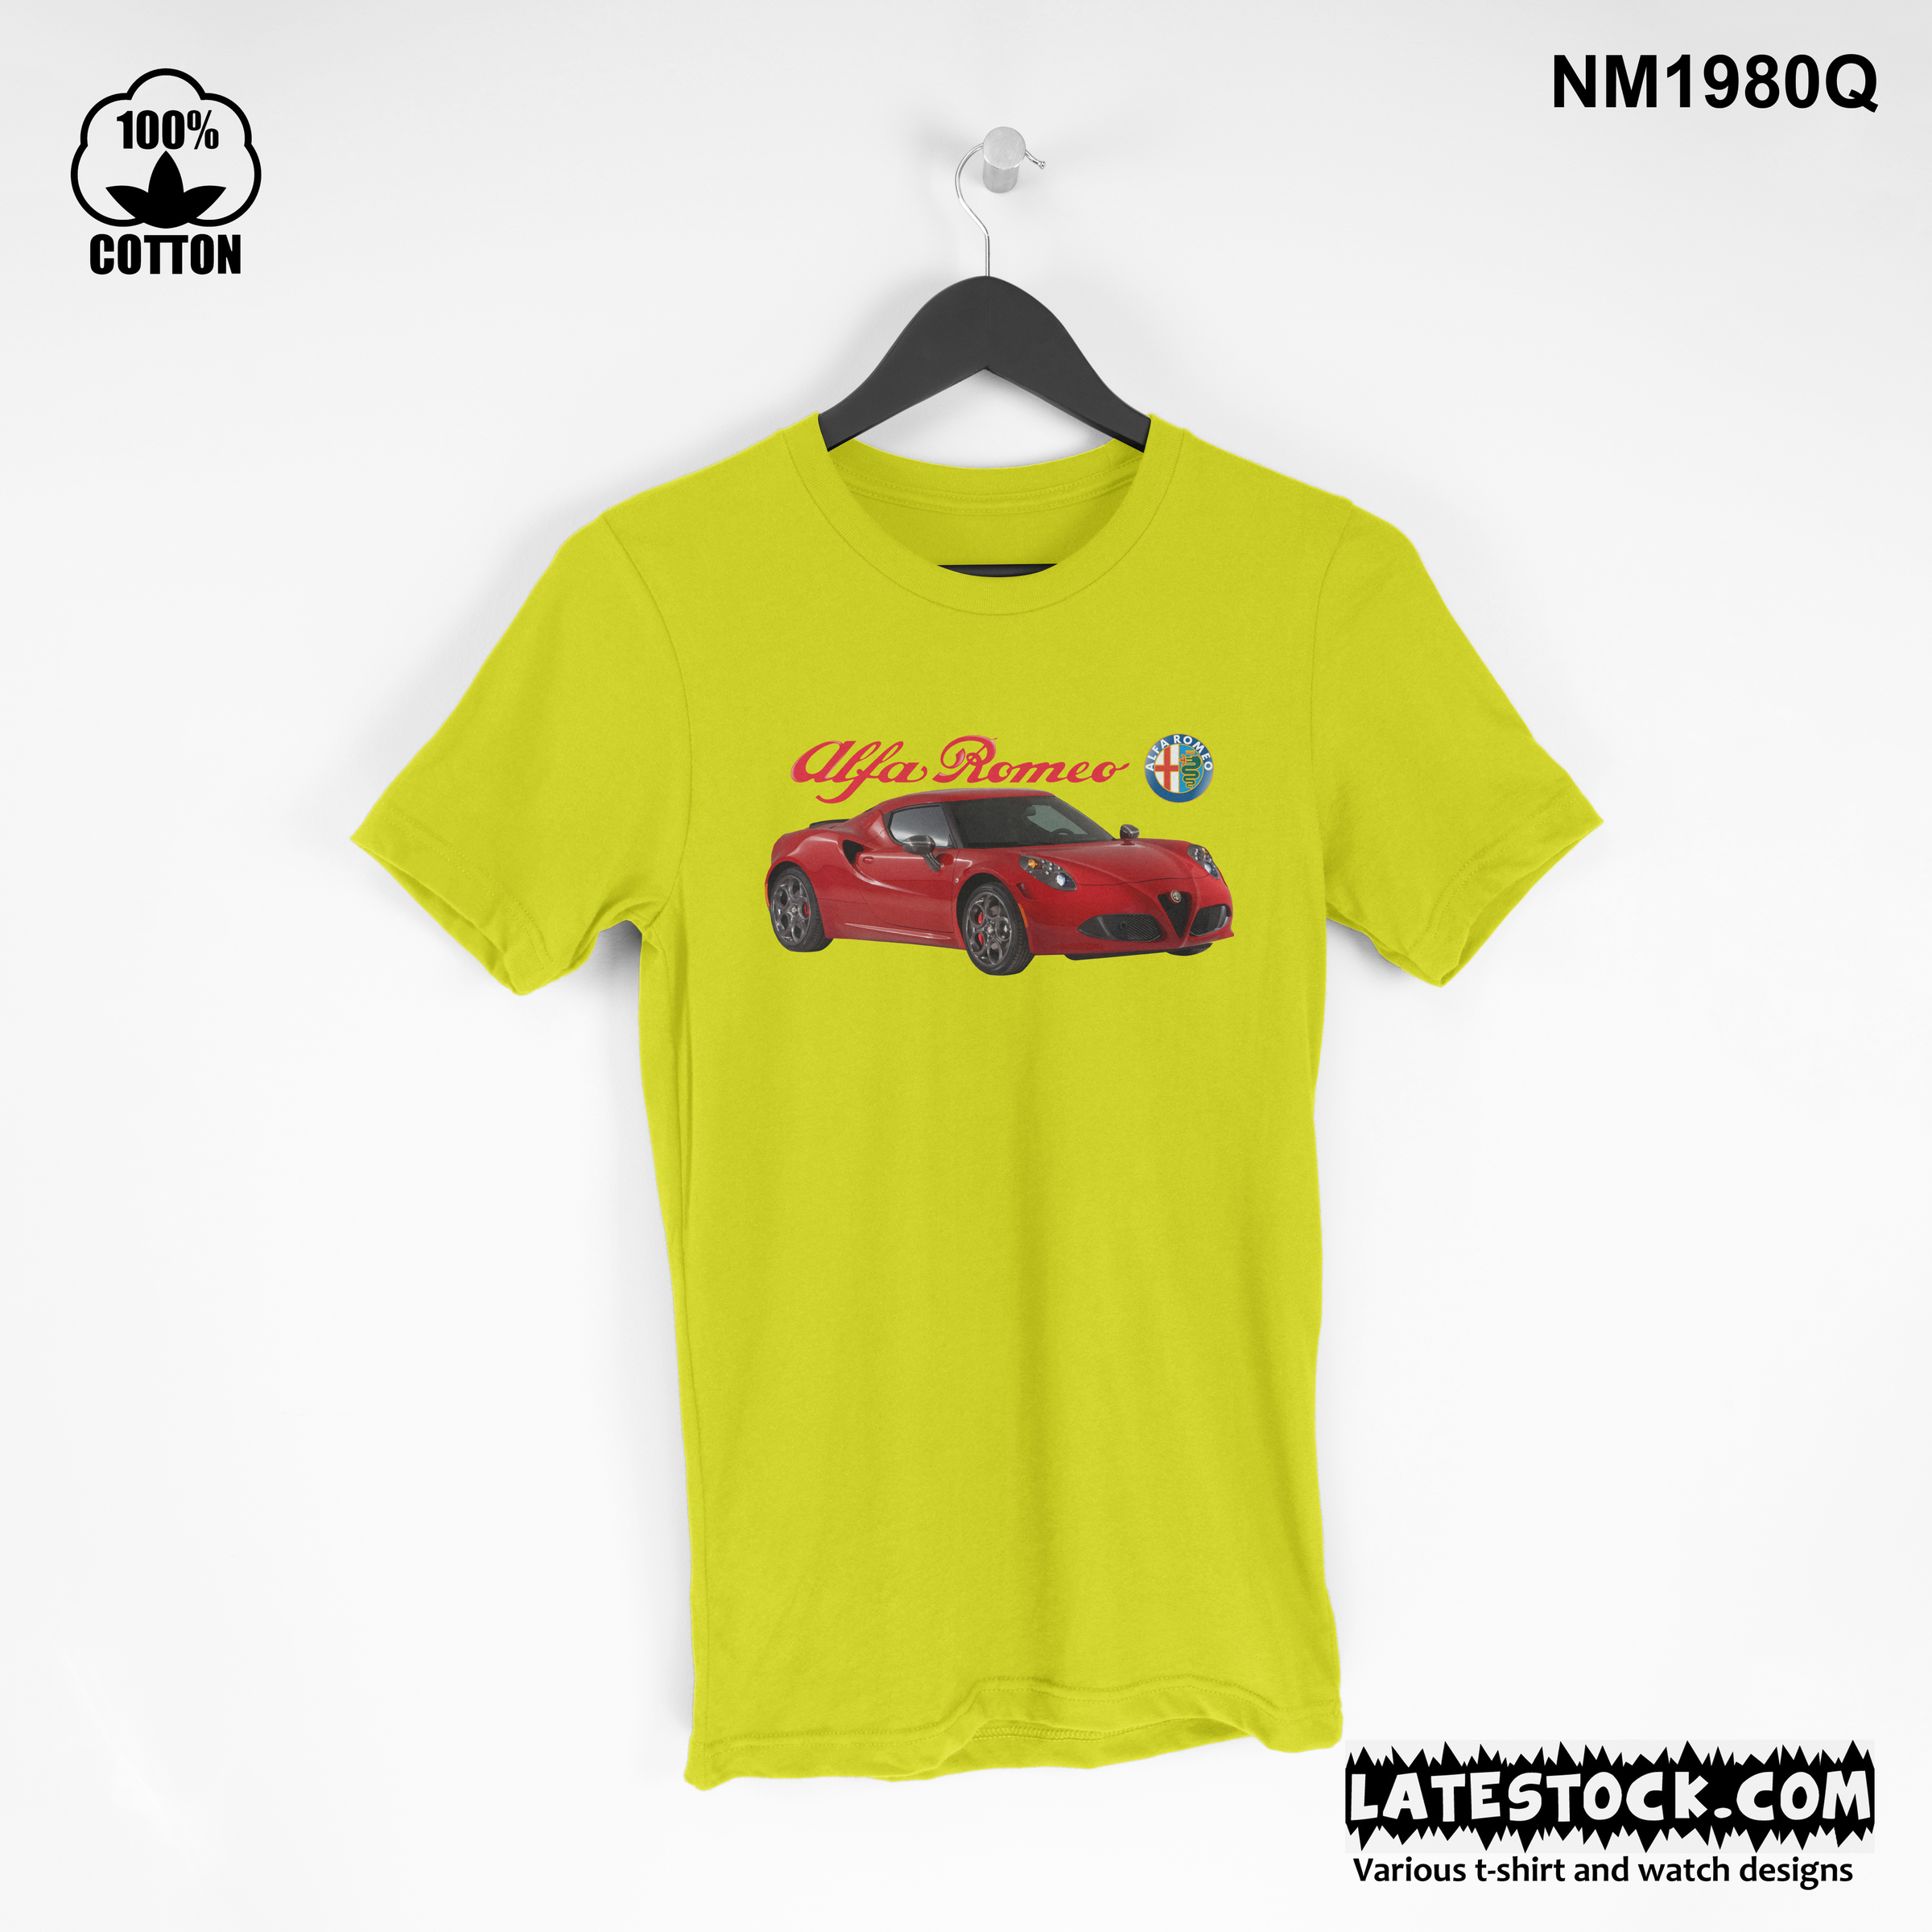 1.6 rare item, new design Alfa Romeo 4C T Shirt Tee Unisex yellow.jpg